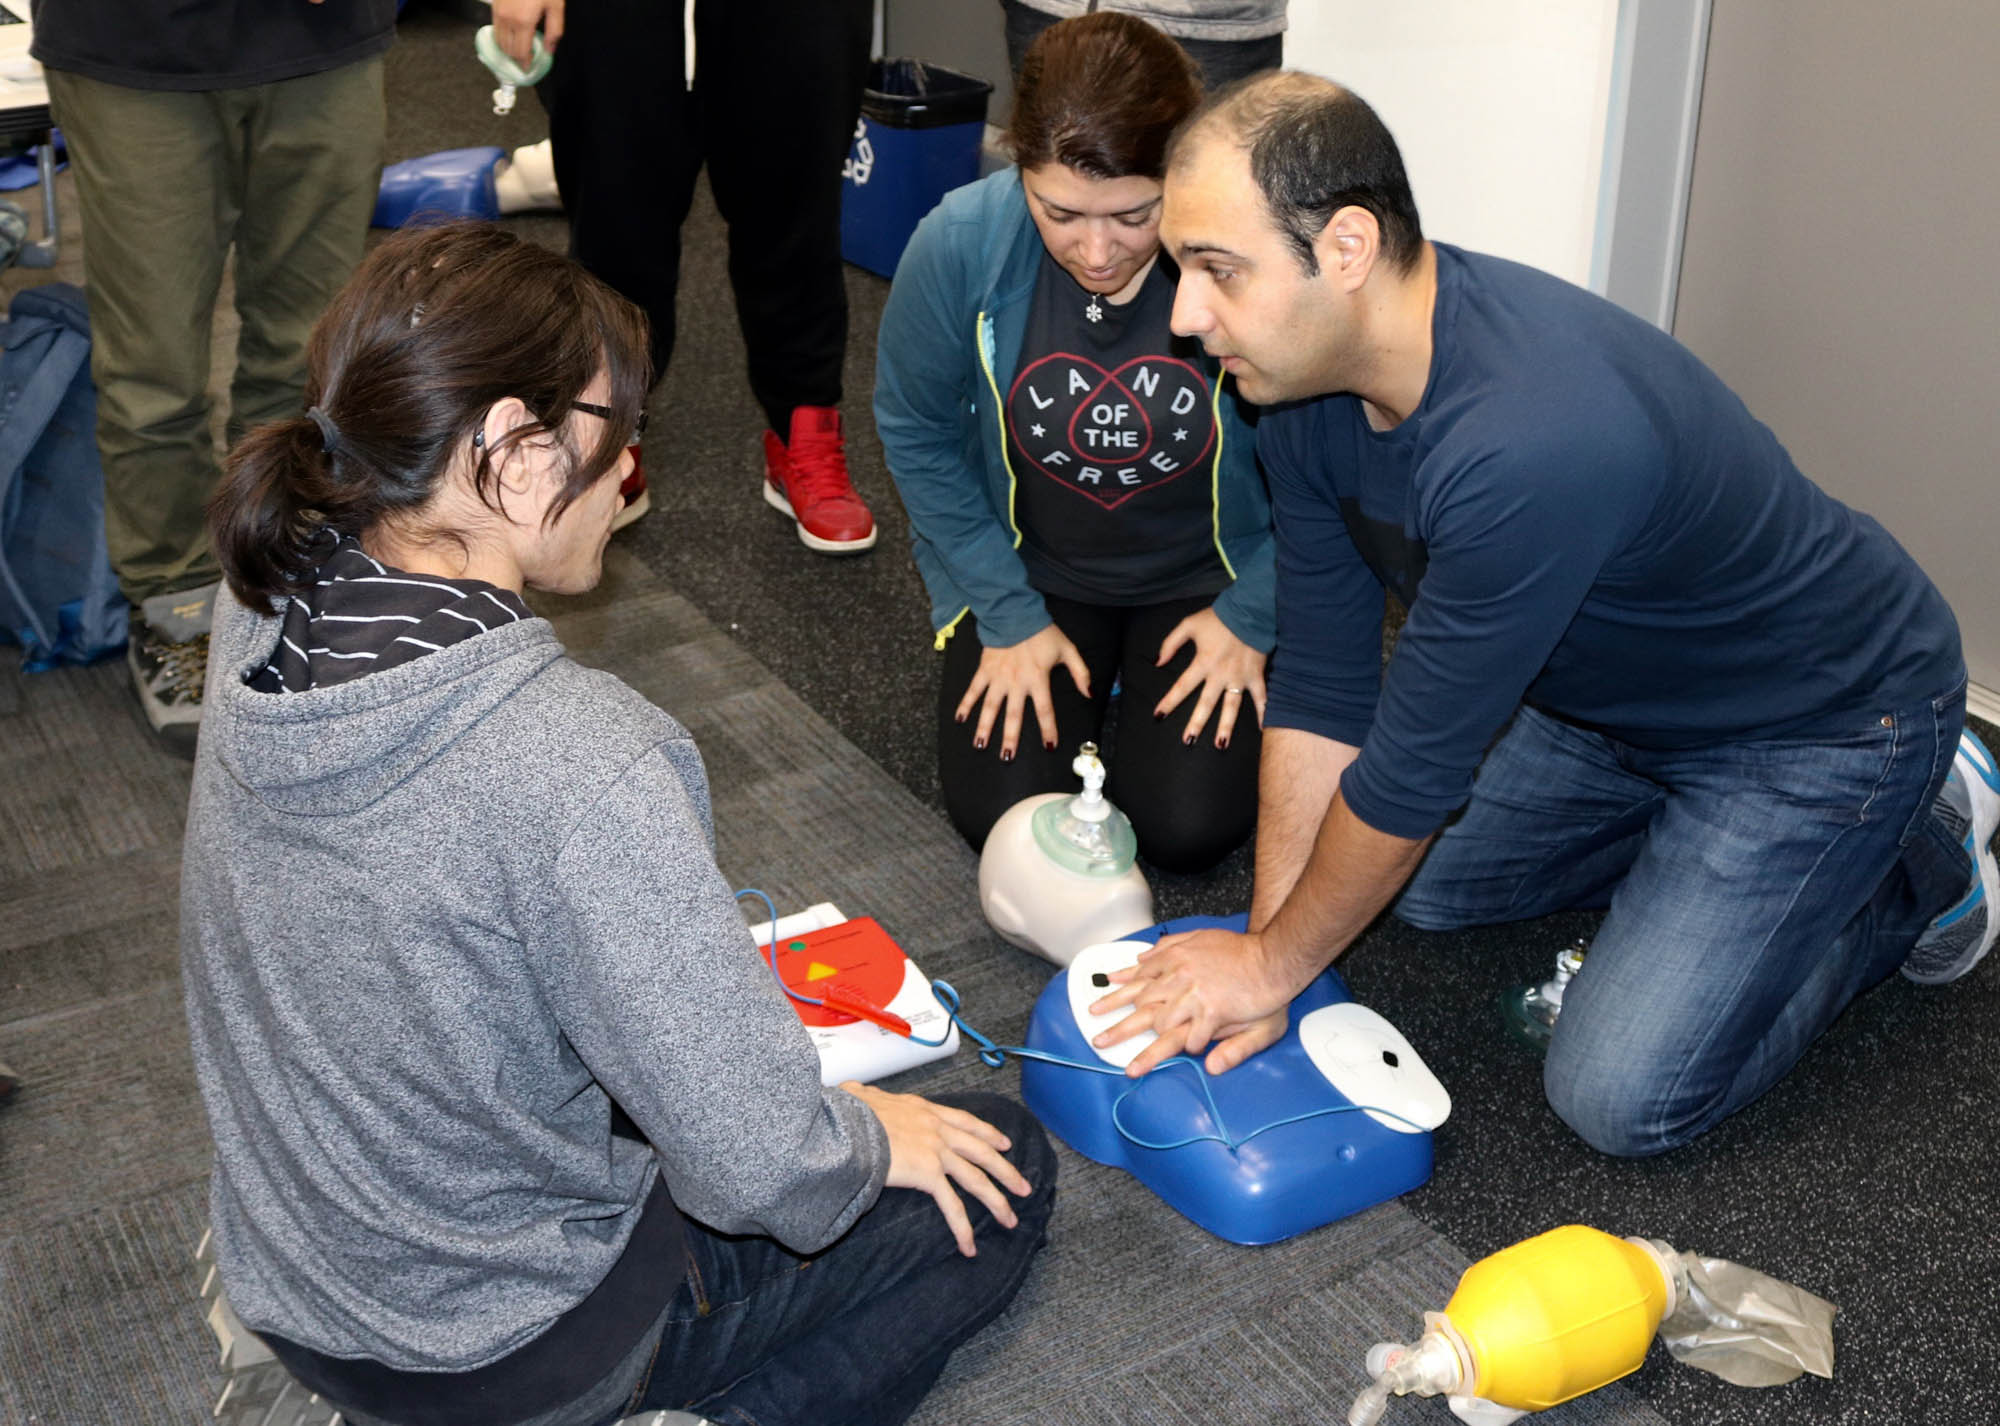 CPR training open to students